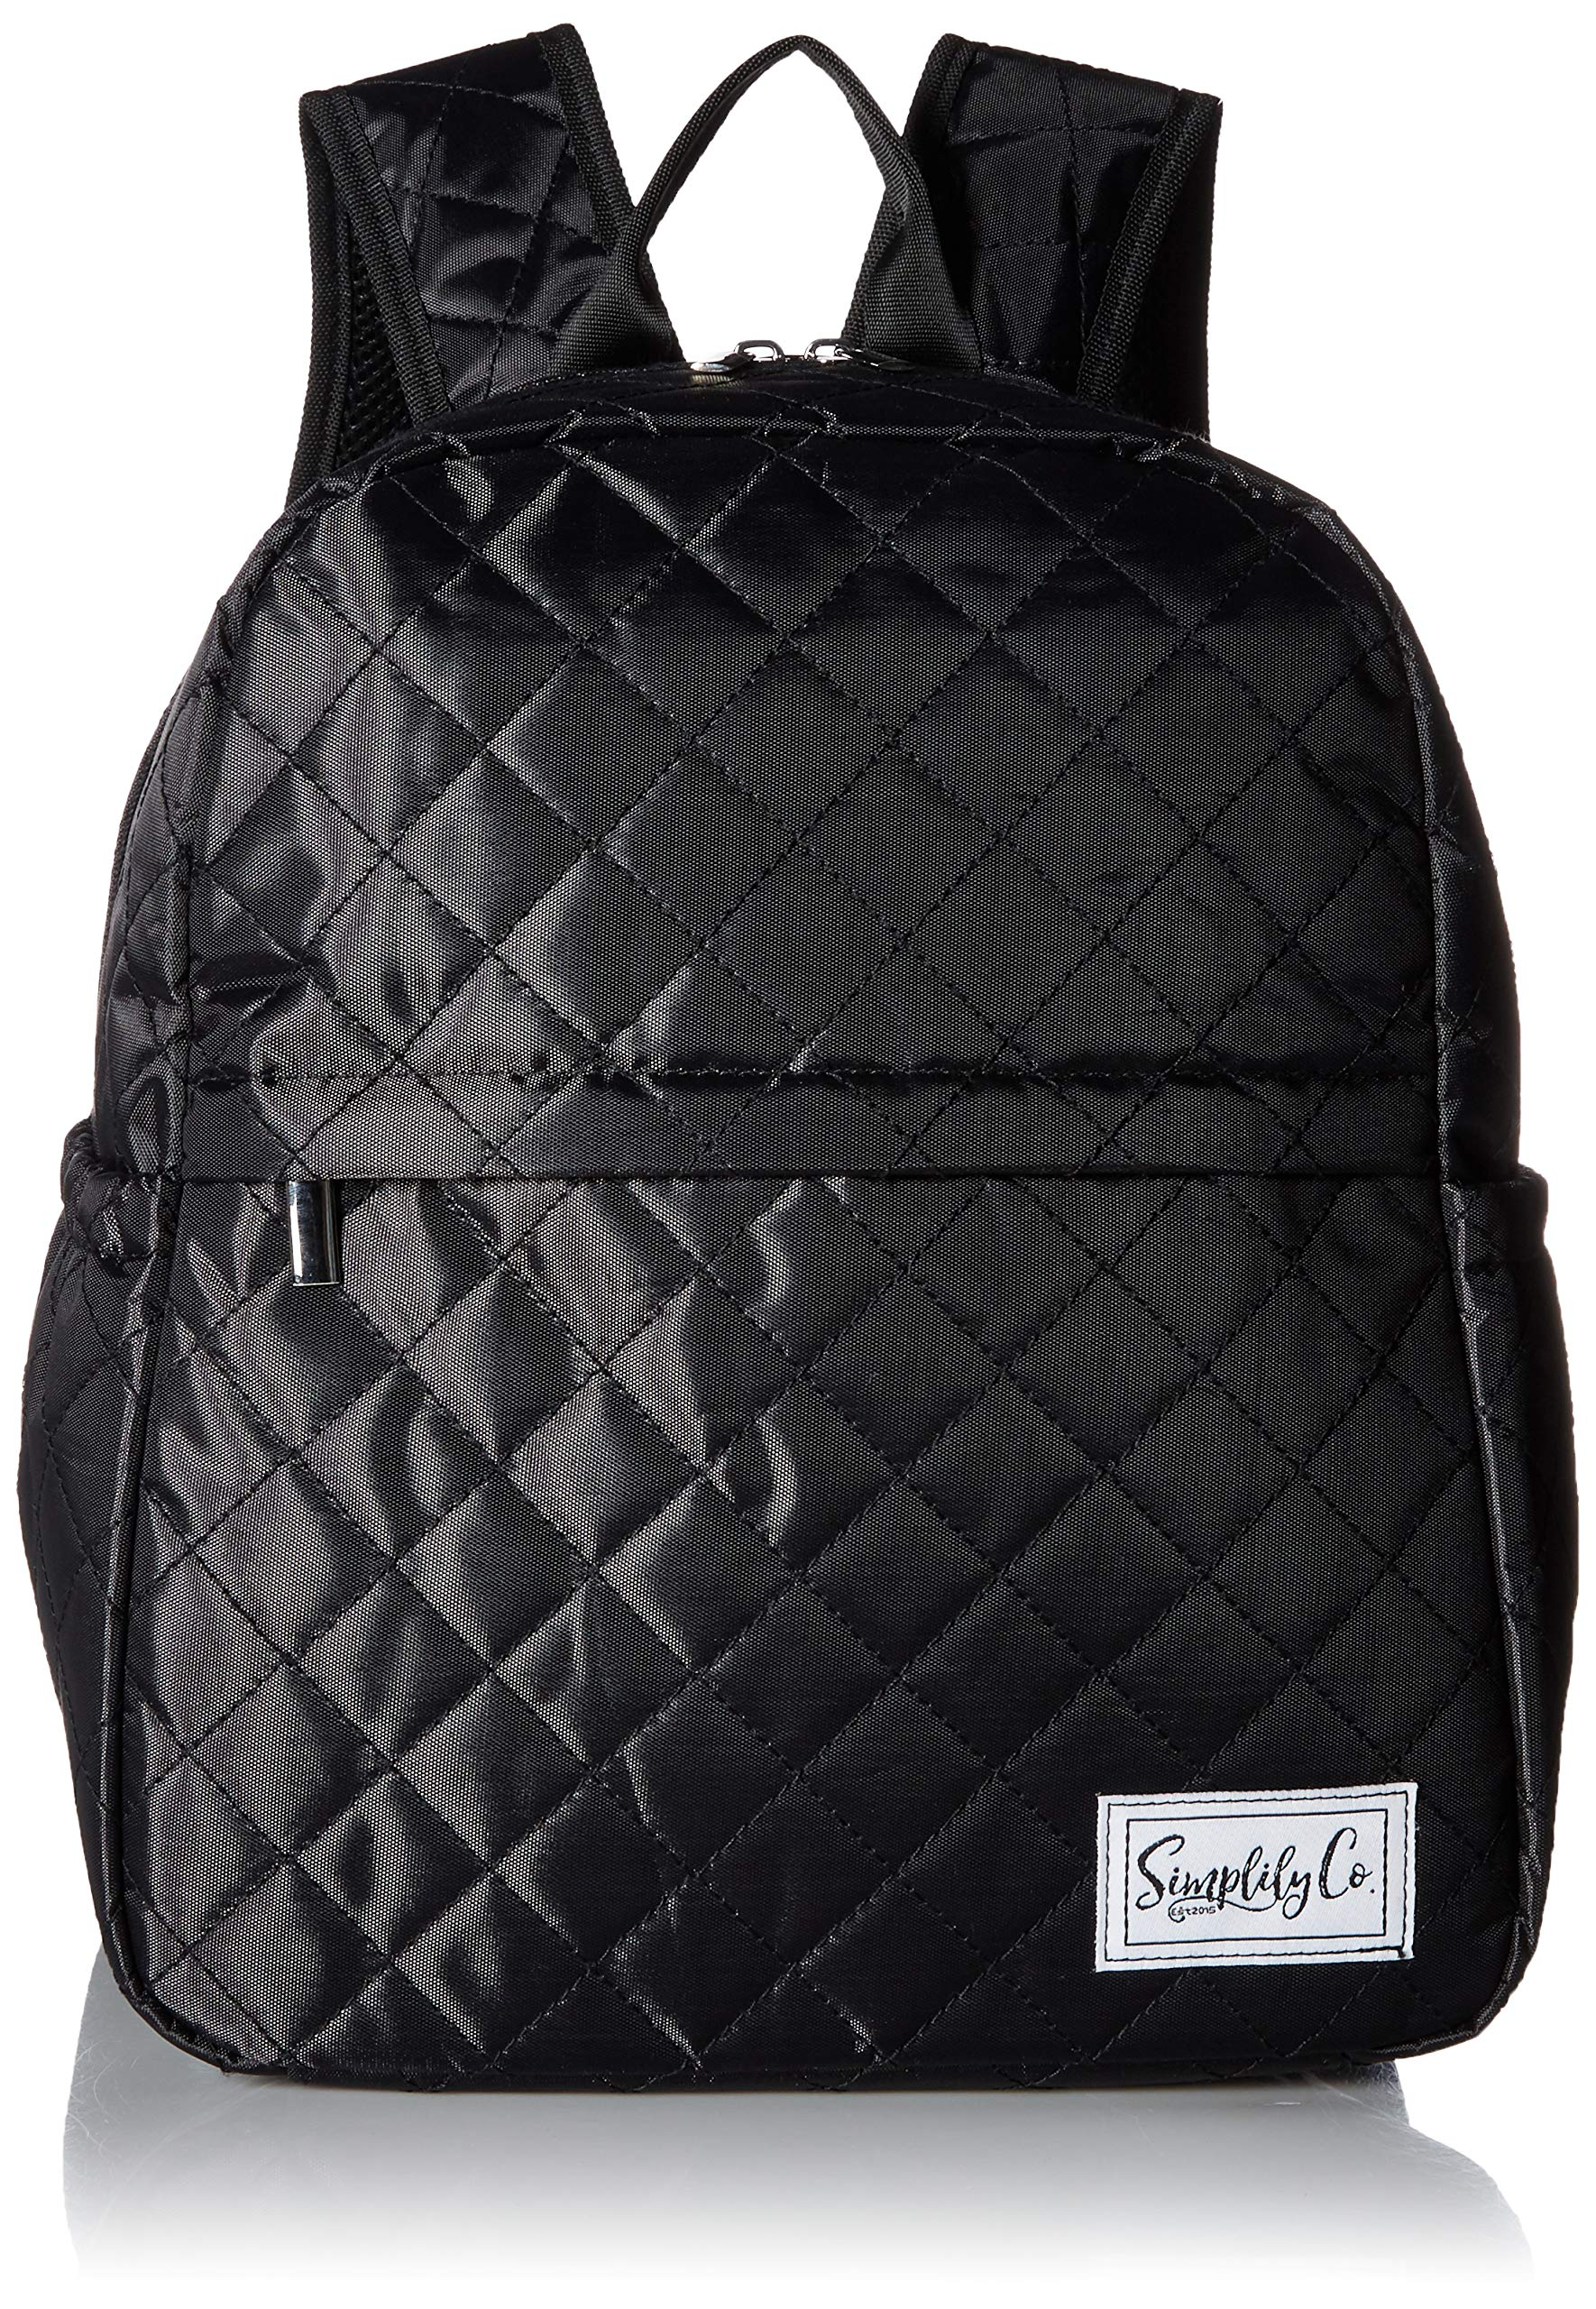 Insulated Mini Backpack Lunch Bag w/Padded Straps & Drink Side Pockets (Black Quilted)